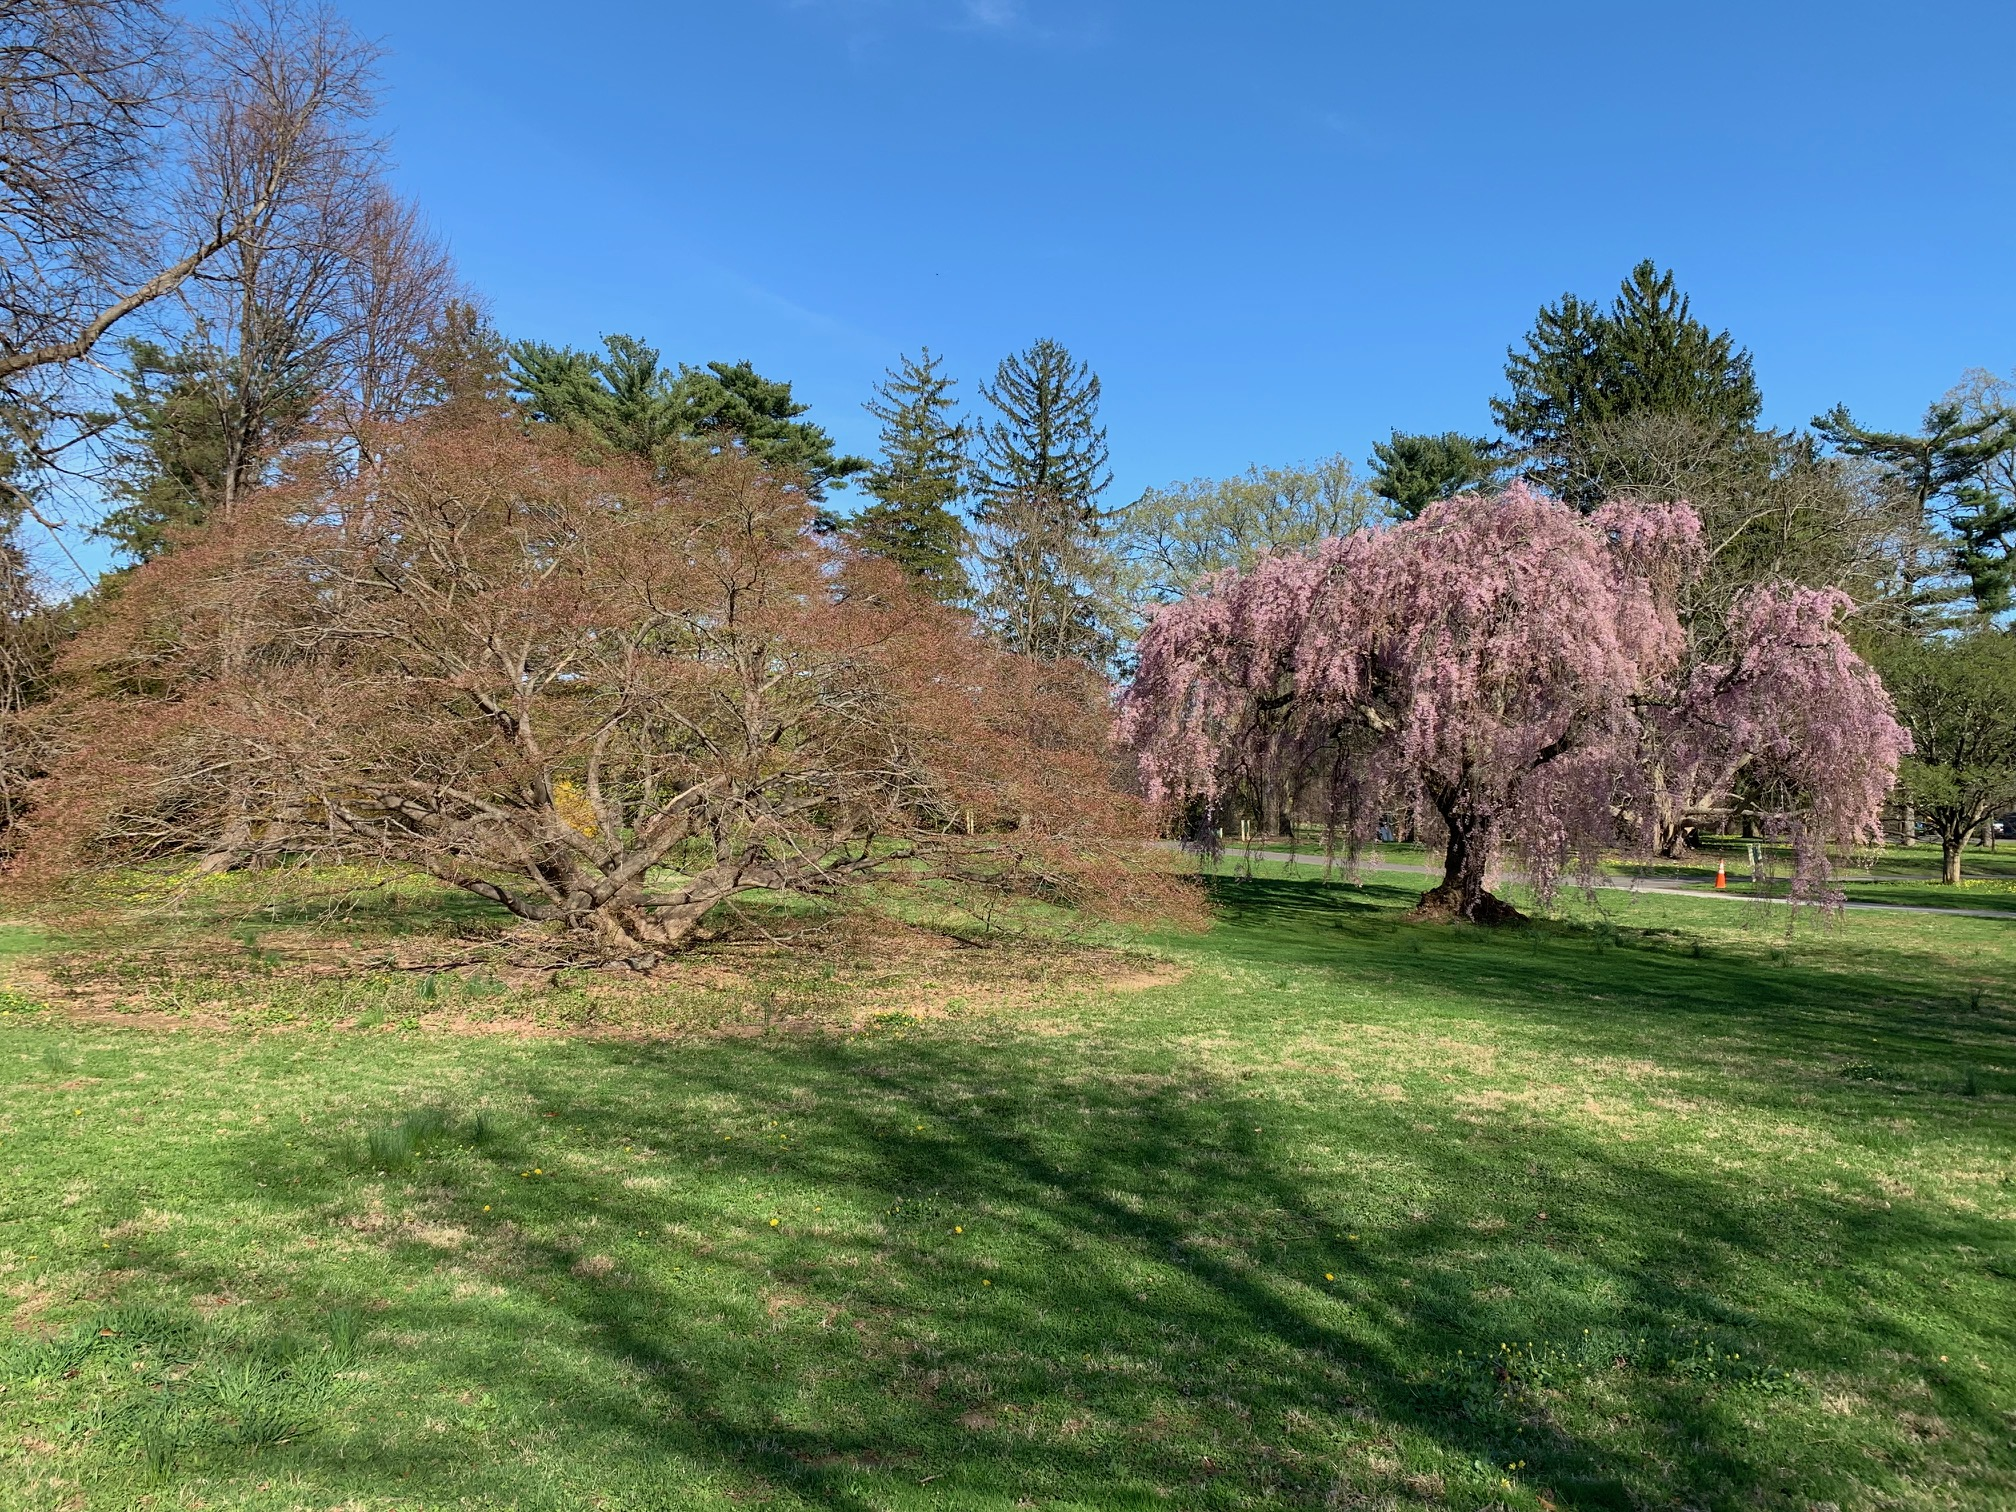 Enjoy the Wonders of Spring at Mill Pond, Wantagh